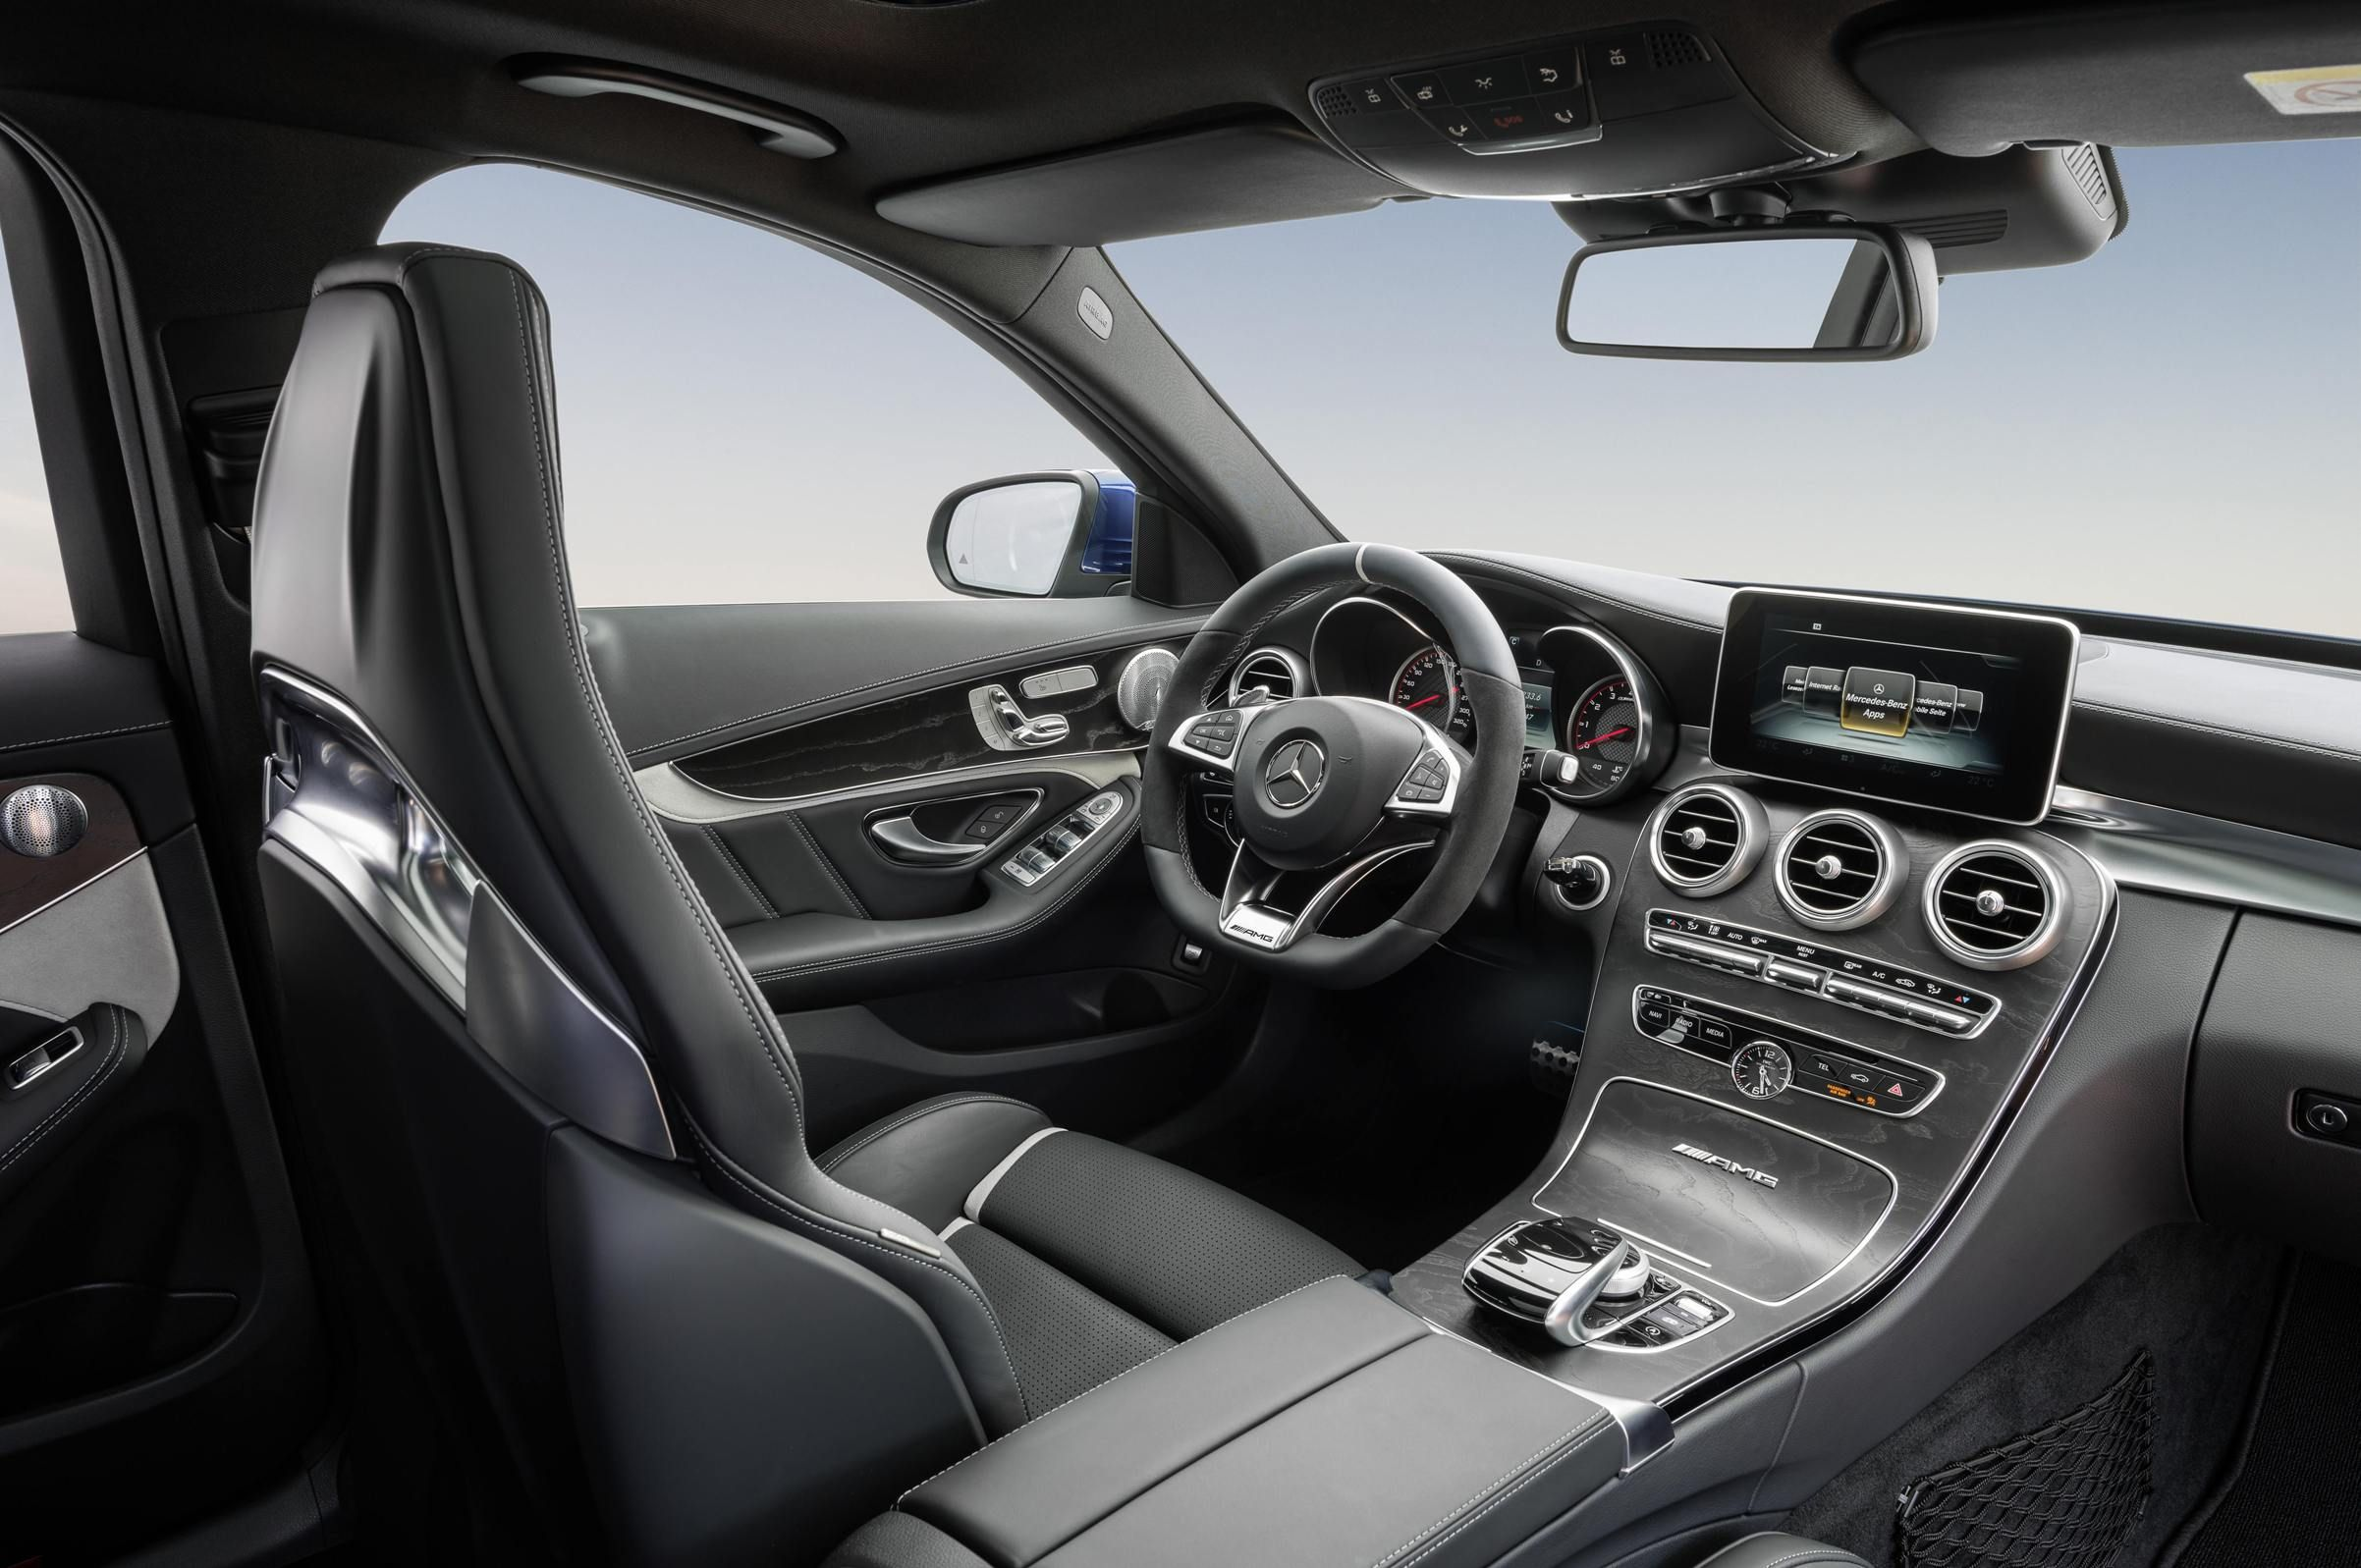 mercedes benz amg c63 estate interior